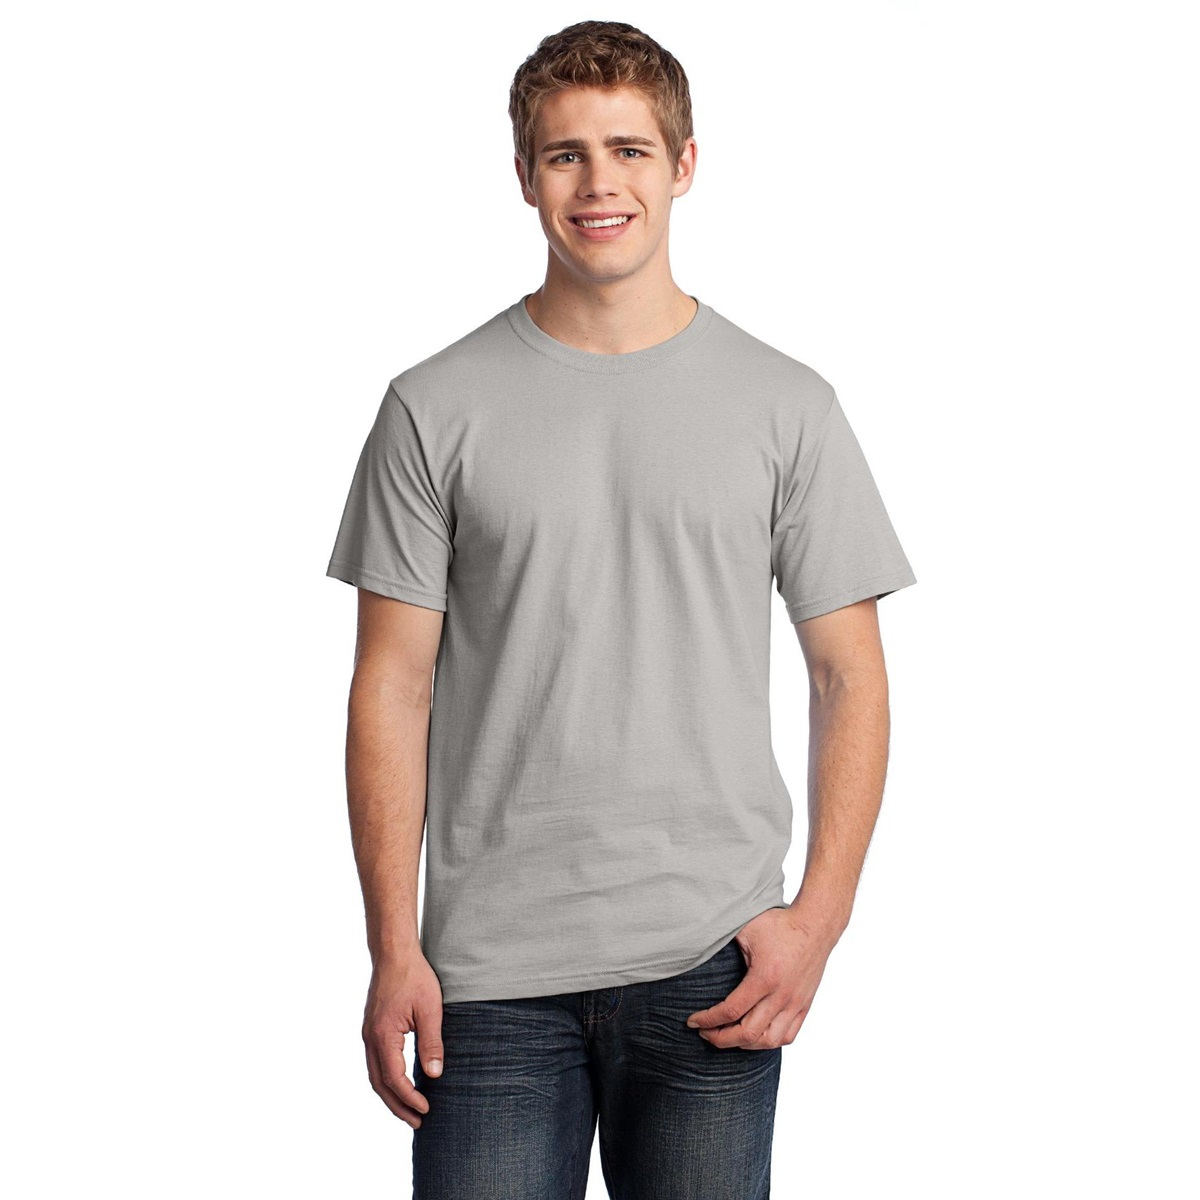 6cd4baae Fruit of the Loom 3930 Heavy Cotton HD T-Shirt - Silver | FullSource.com